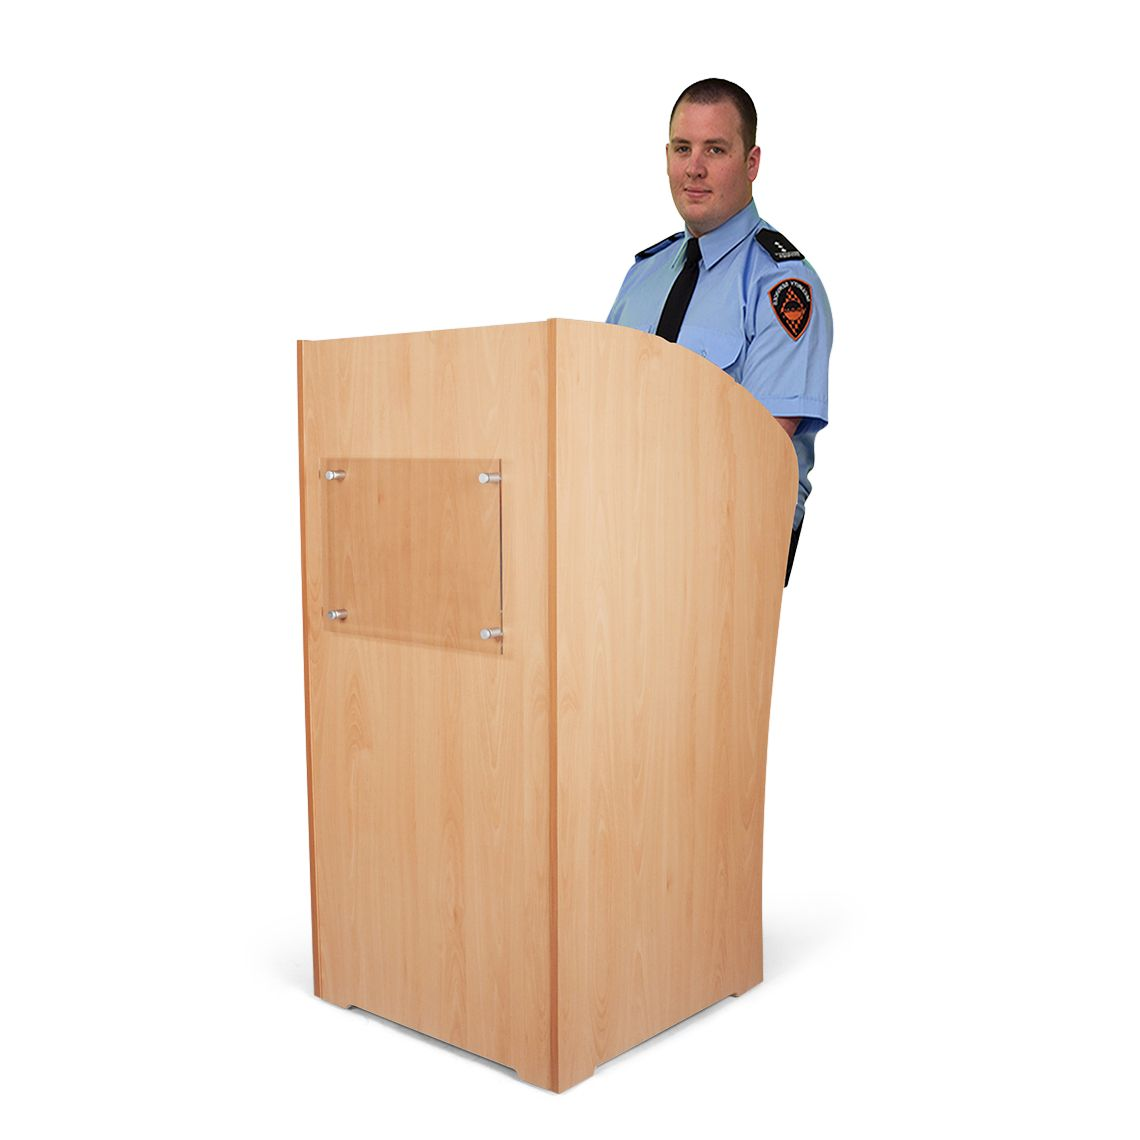 Security Guard Podium Or Lectern Made From A Combination Of Wood And Acrylic Strong Substantial Design With Built In Loc Podium Design Security Guard Lectern